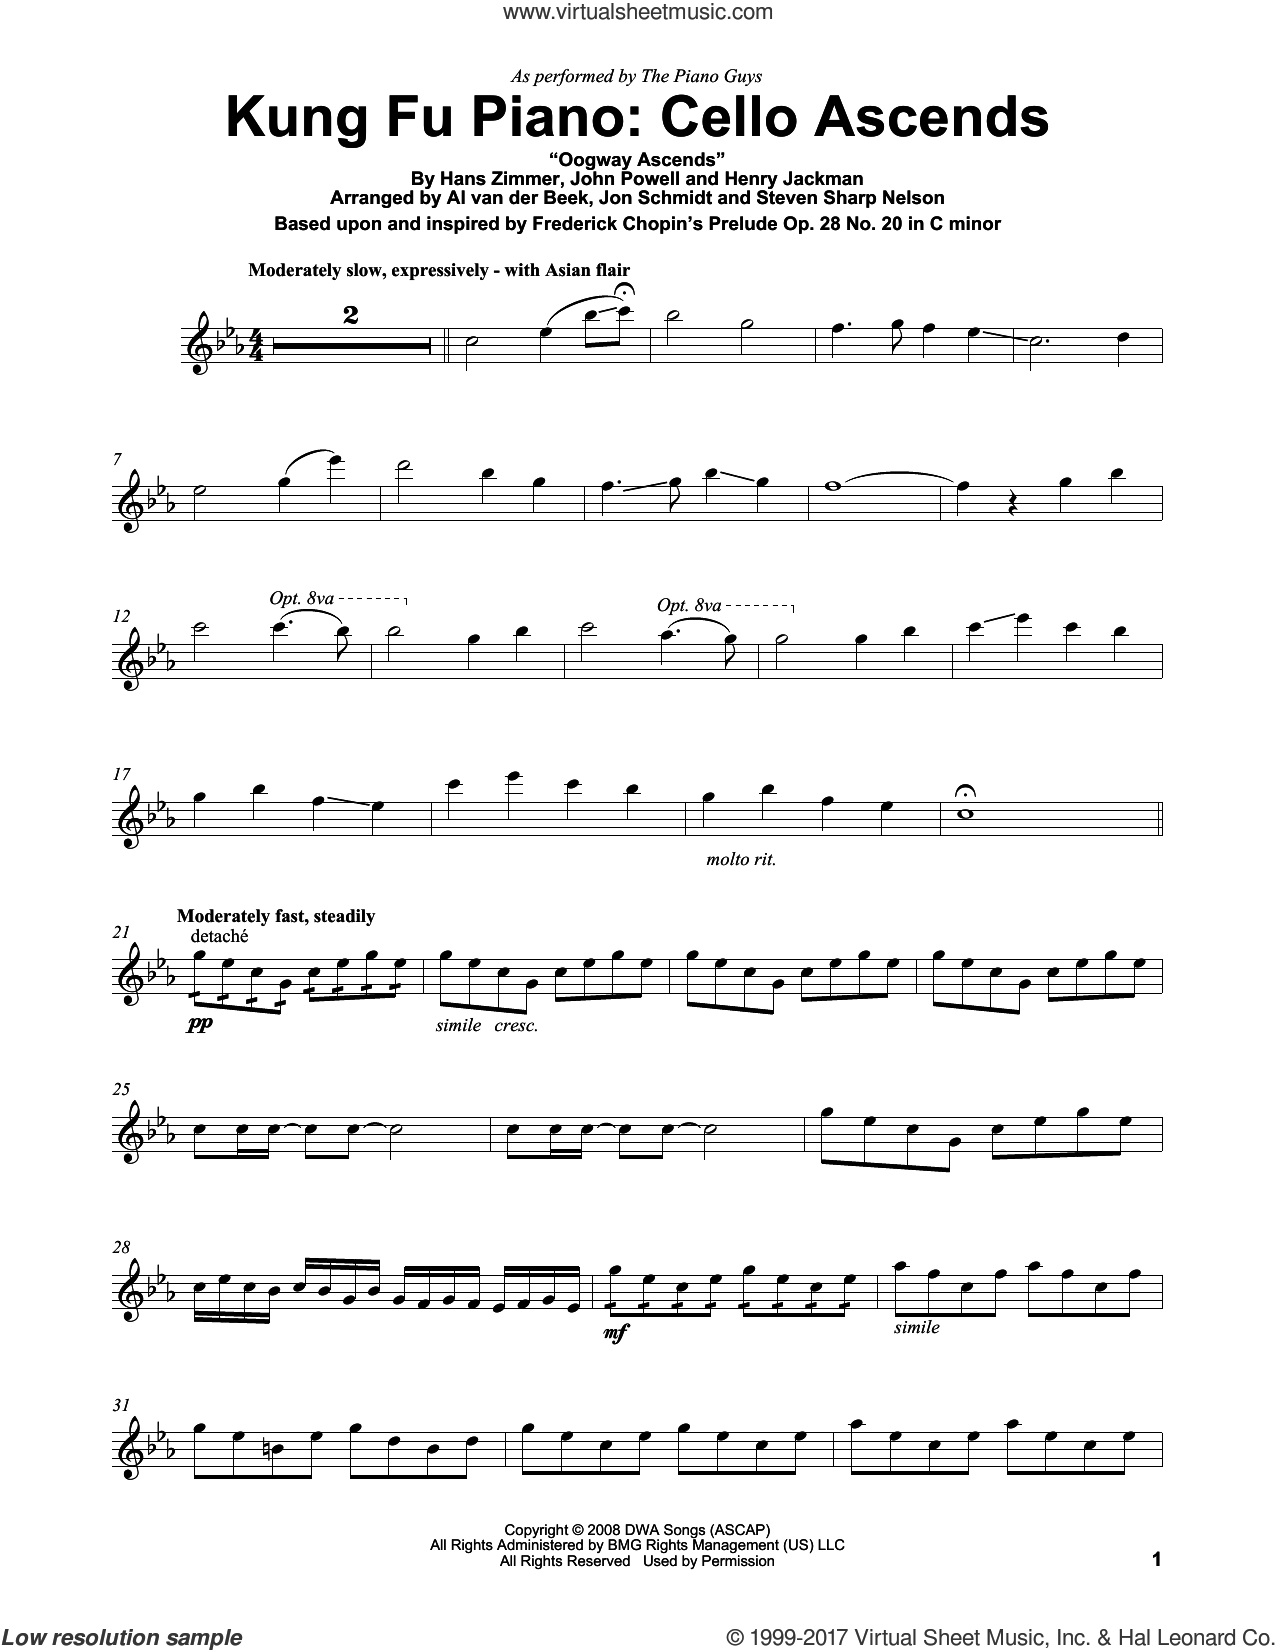 Kung Fu Piano: Cello Ascends sheet music for violin solo by The Piano Guys, Frederick Chopin, Hans Zimmer, Henry Jackman and John Powell, intermediate skill level